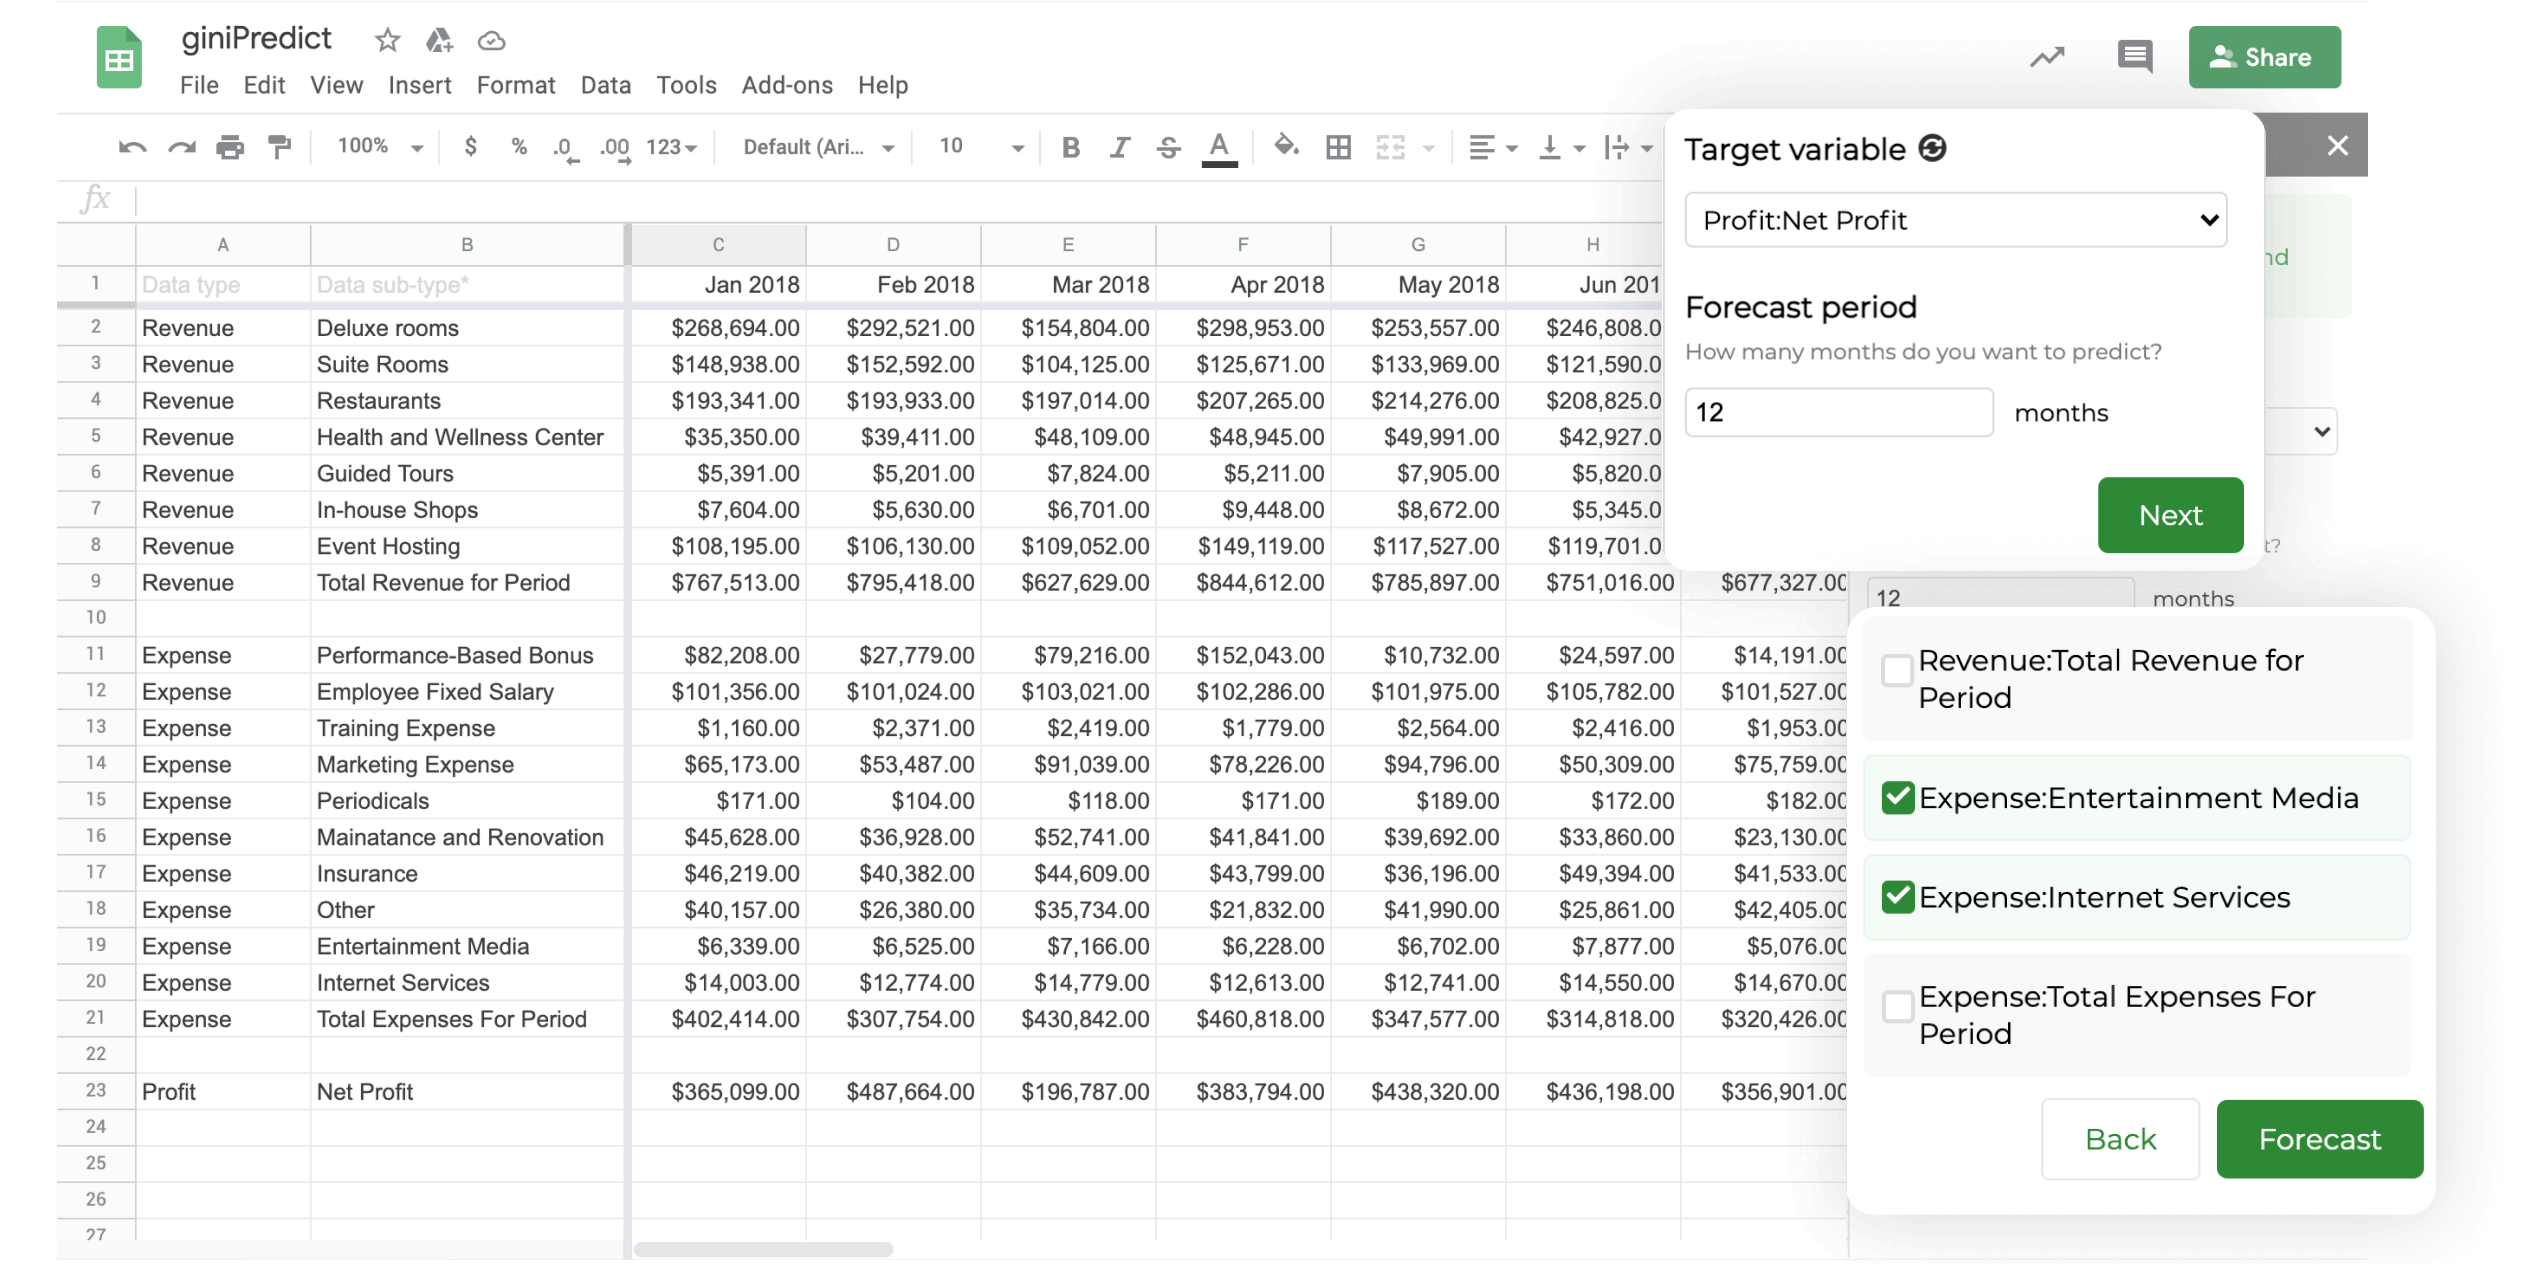 giniPredict Google Sheet add-on | How to predict P&L data with machine learning